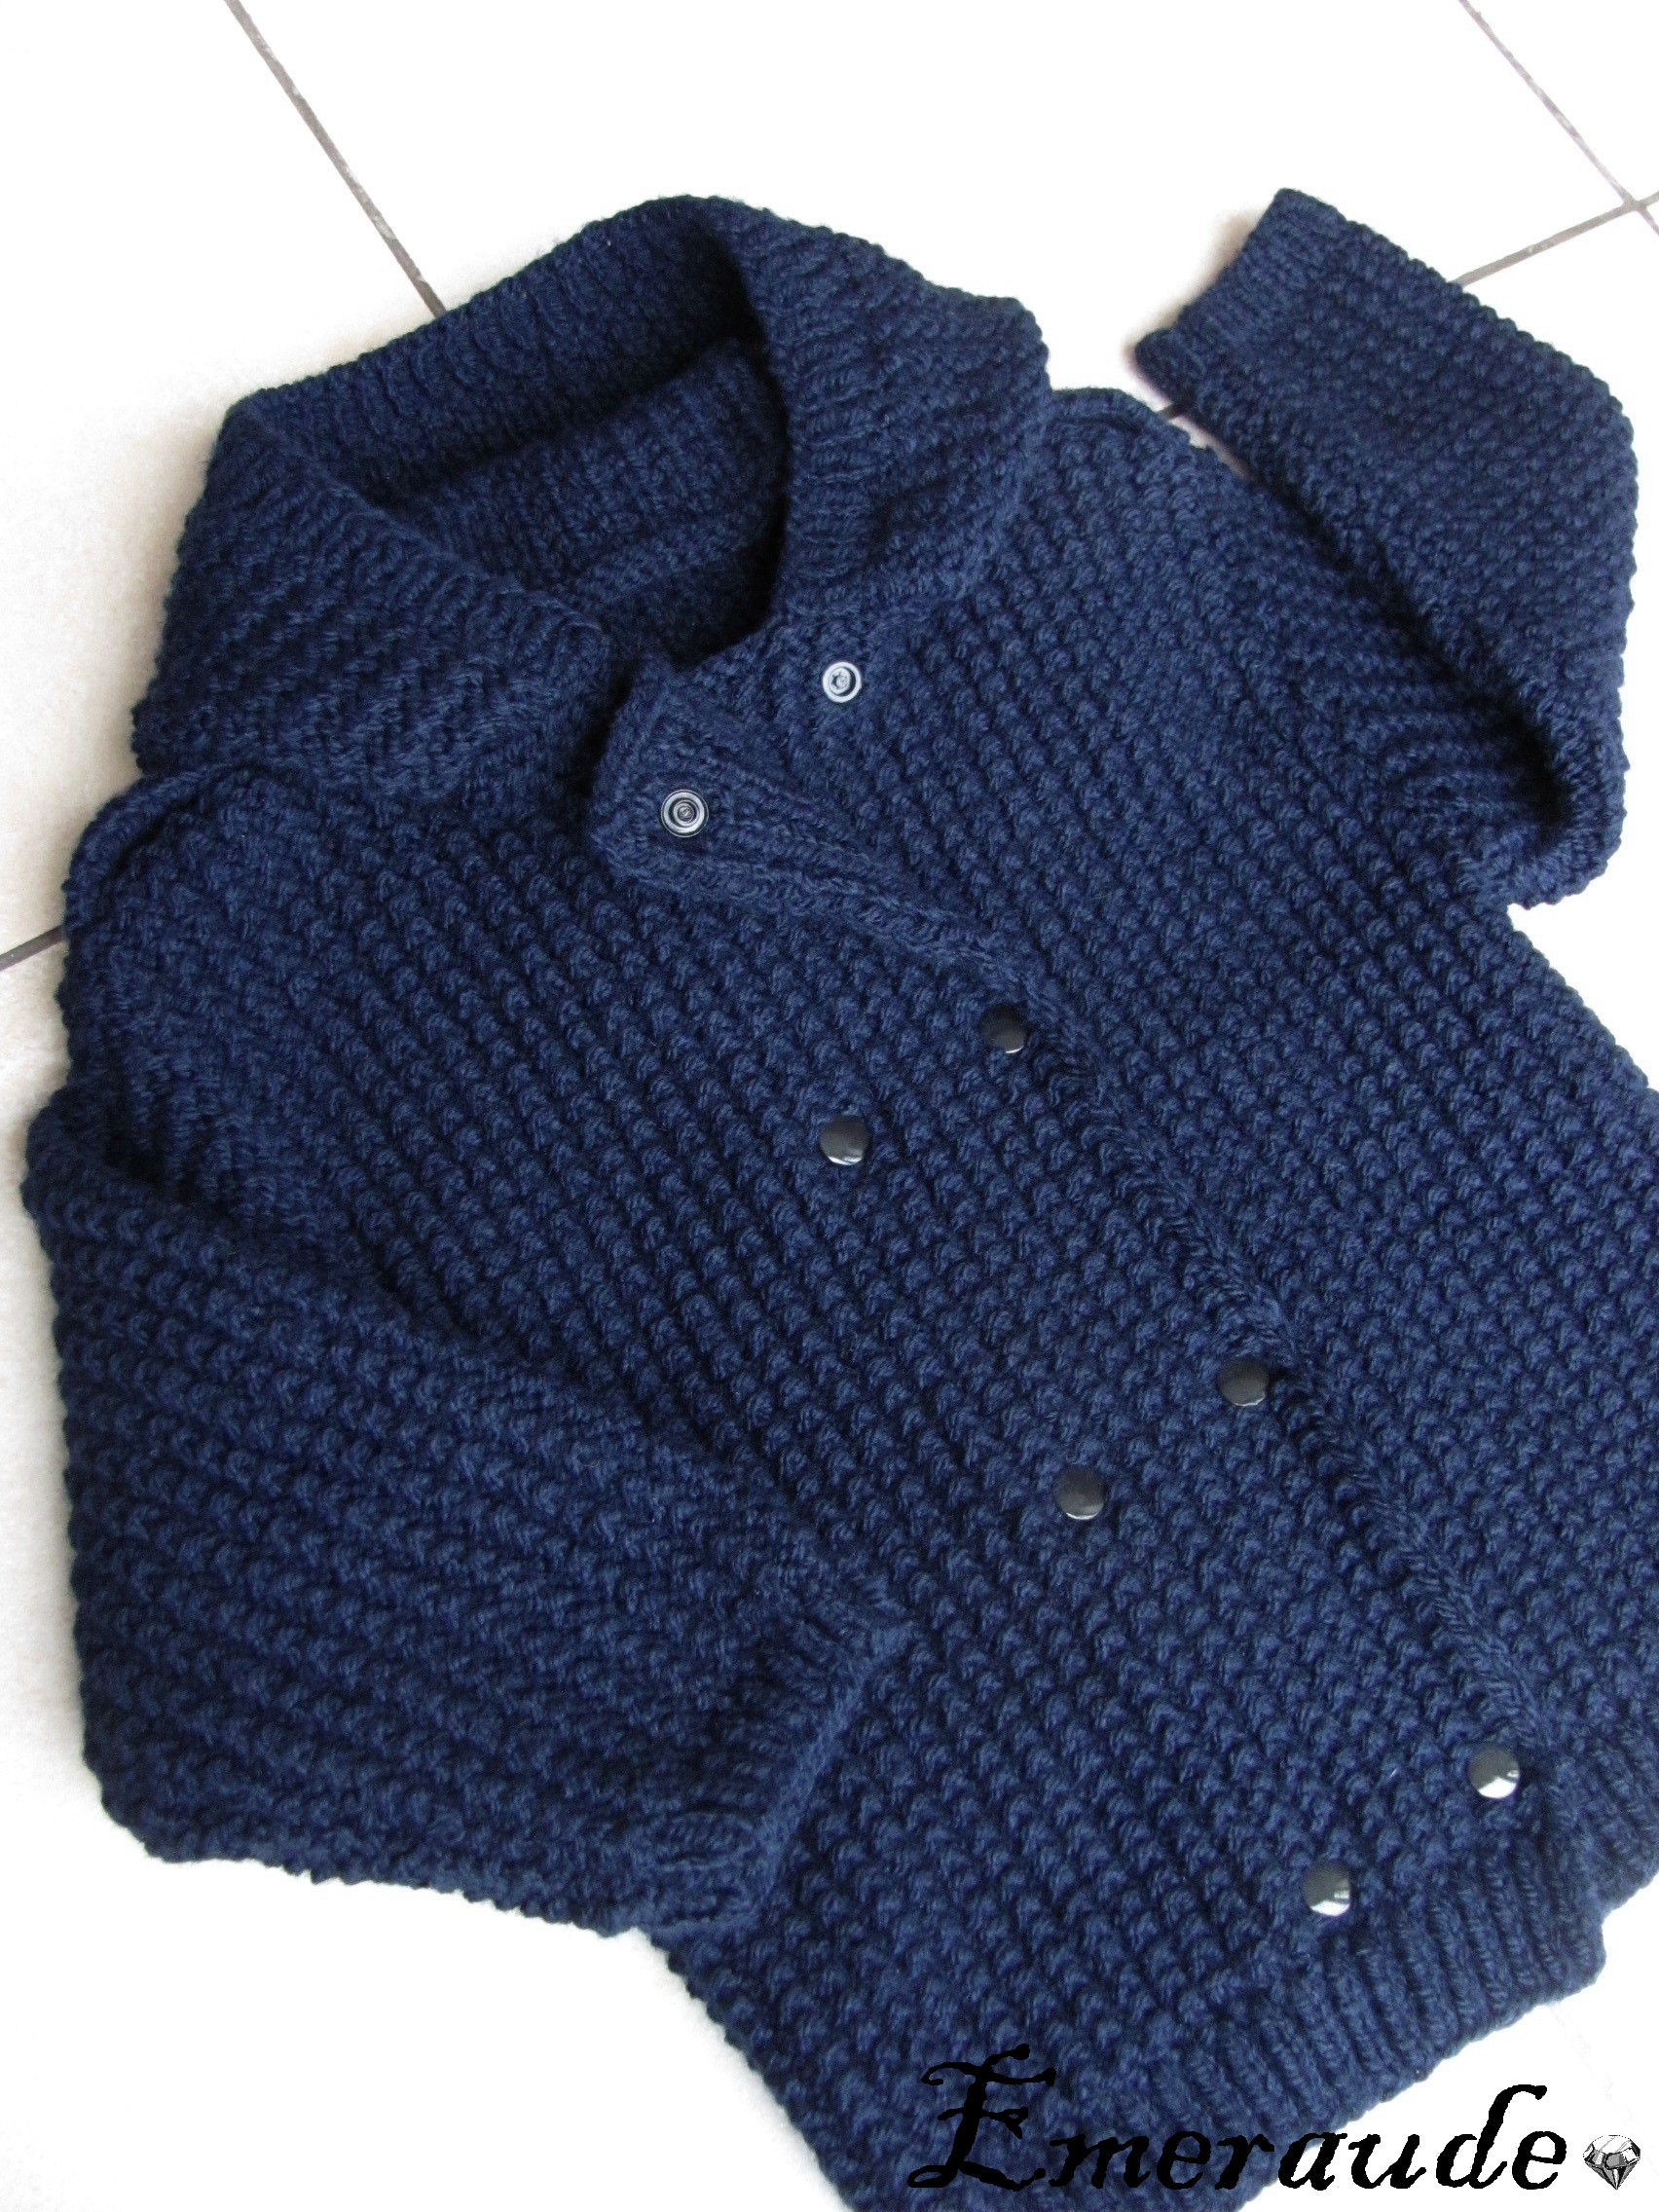 Tricot: veste bébé au point de sable